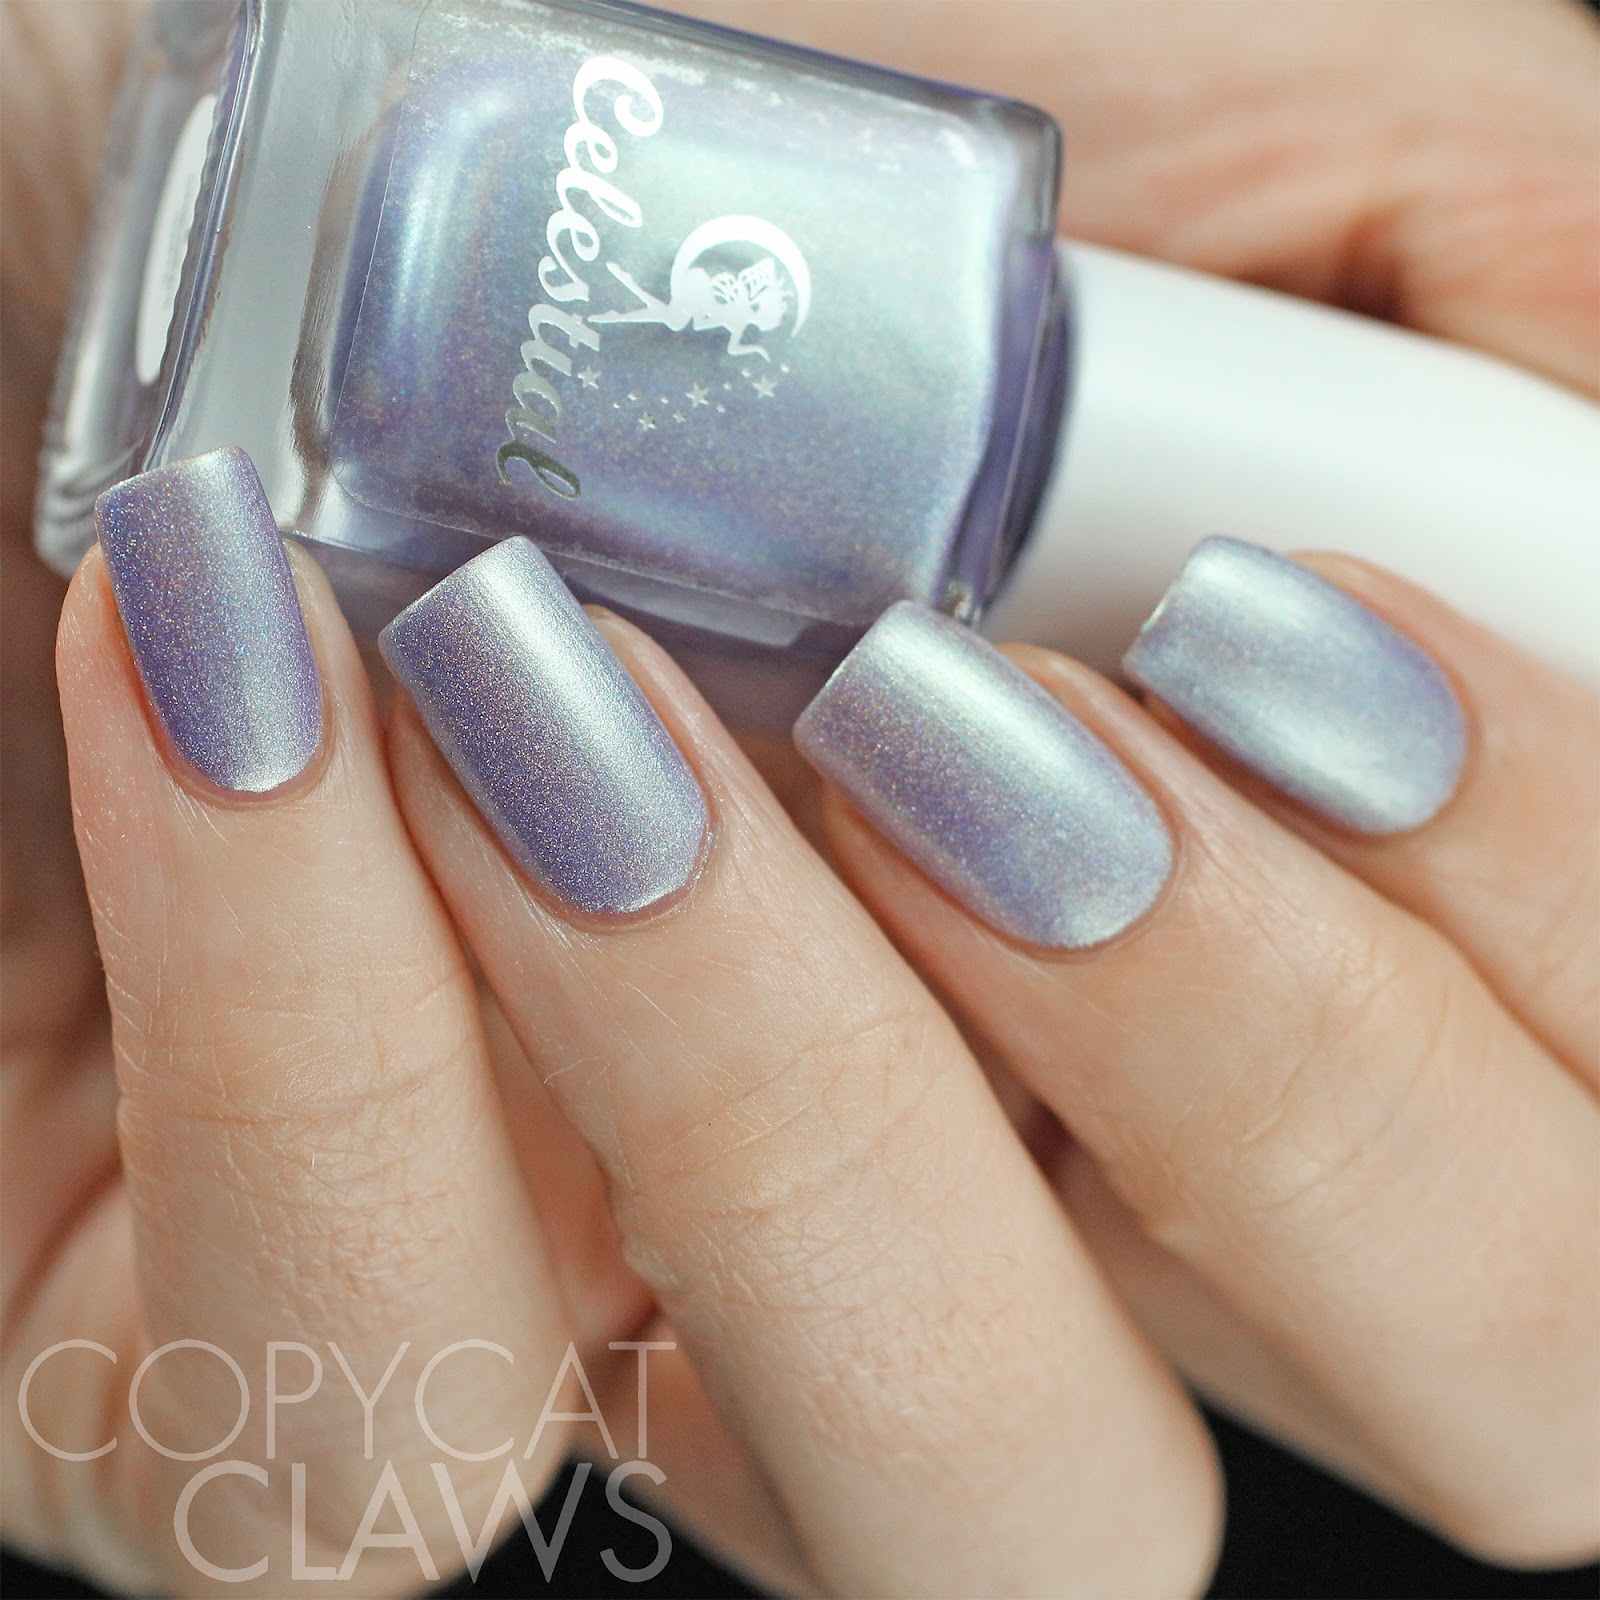 Copycat Claws Blue Color Block Nail Art: Copycat Claws: Celestial Cosmetics Rainbows & Unicorns